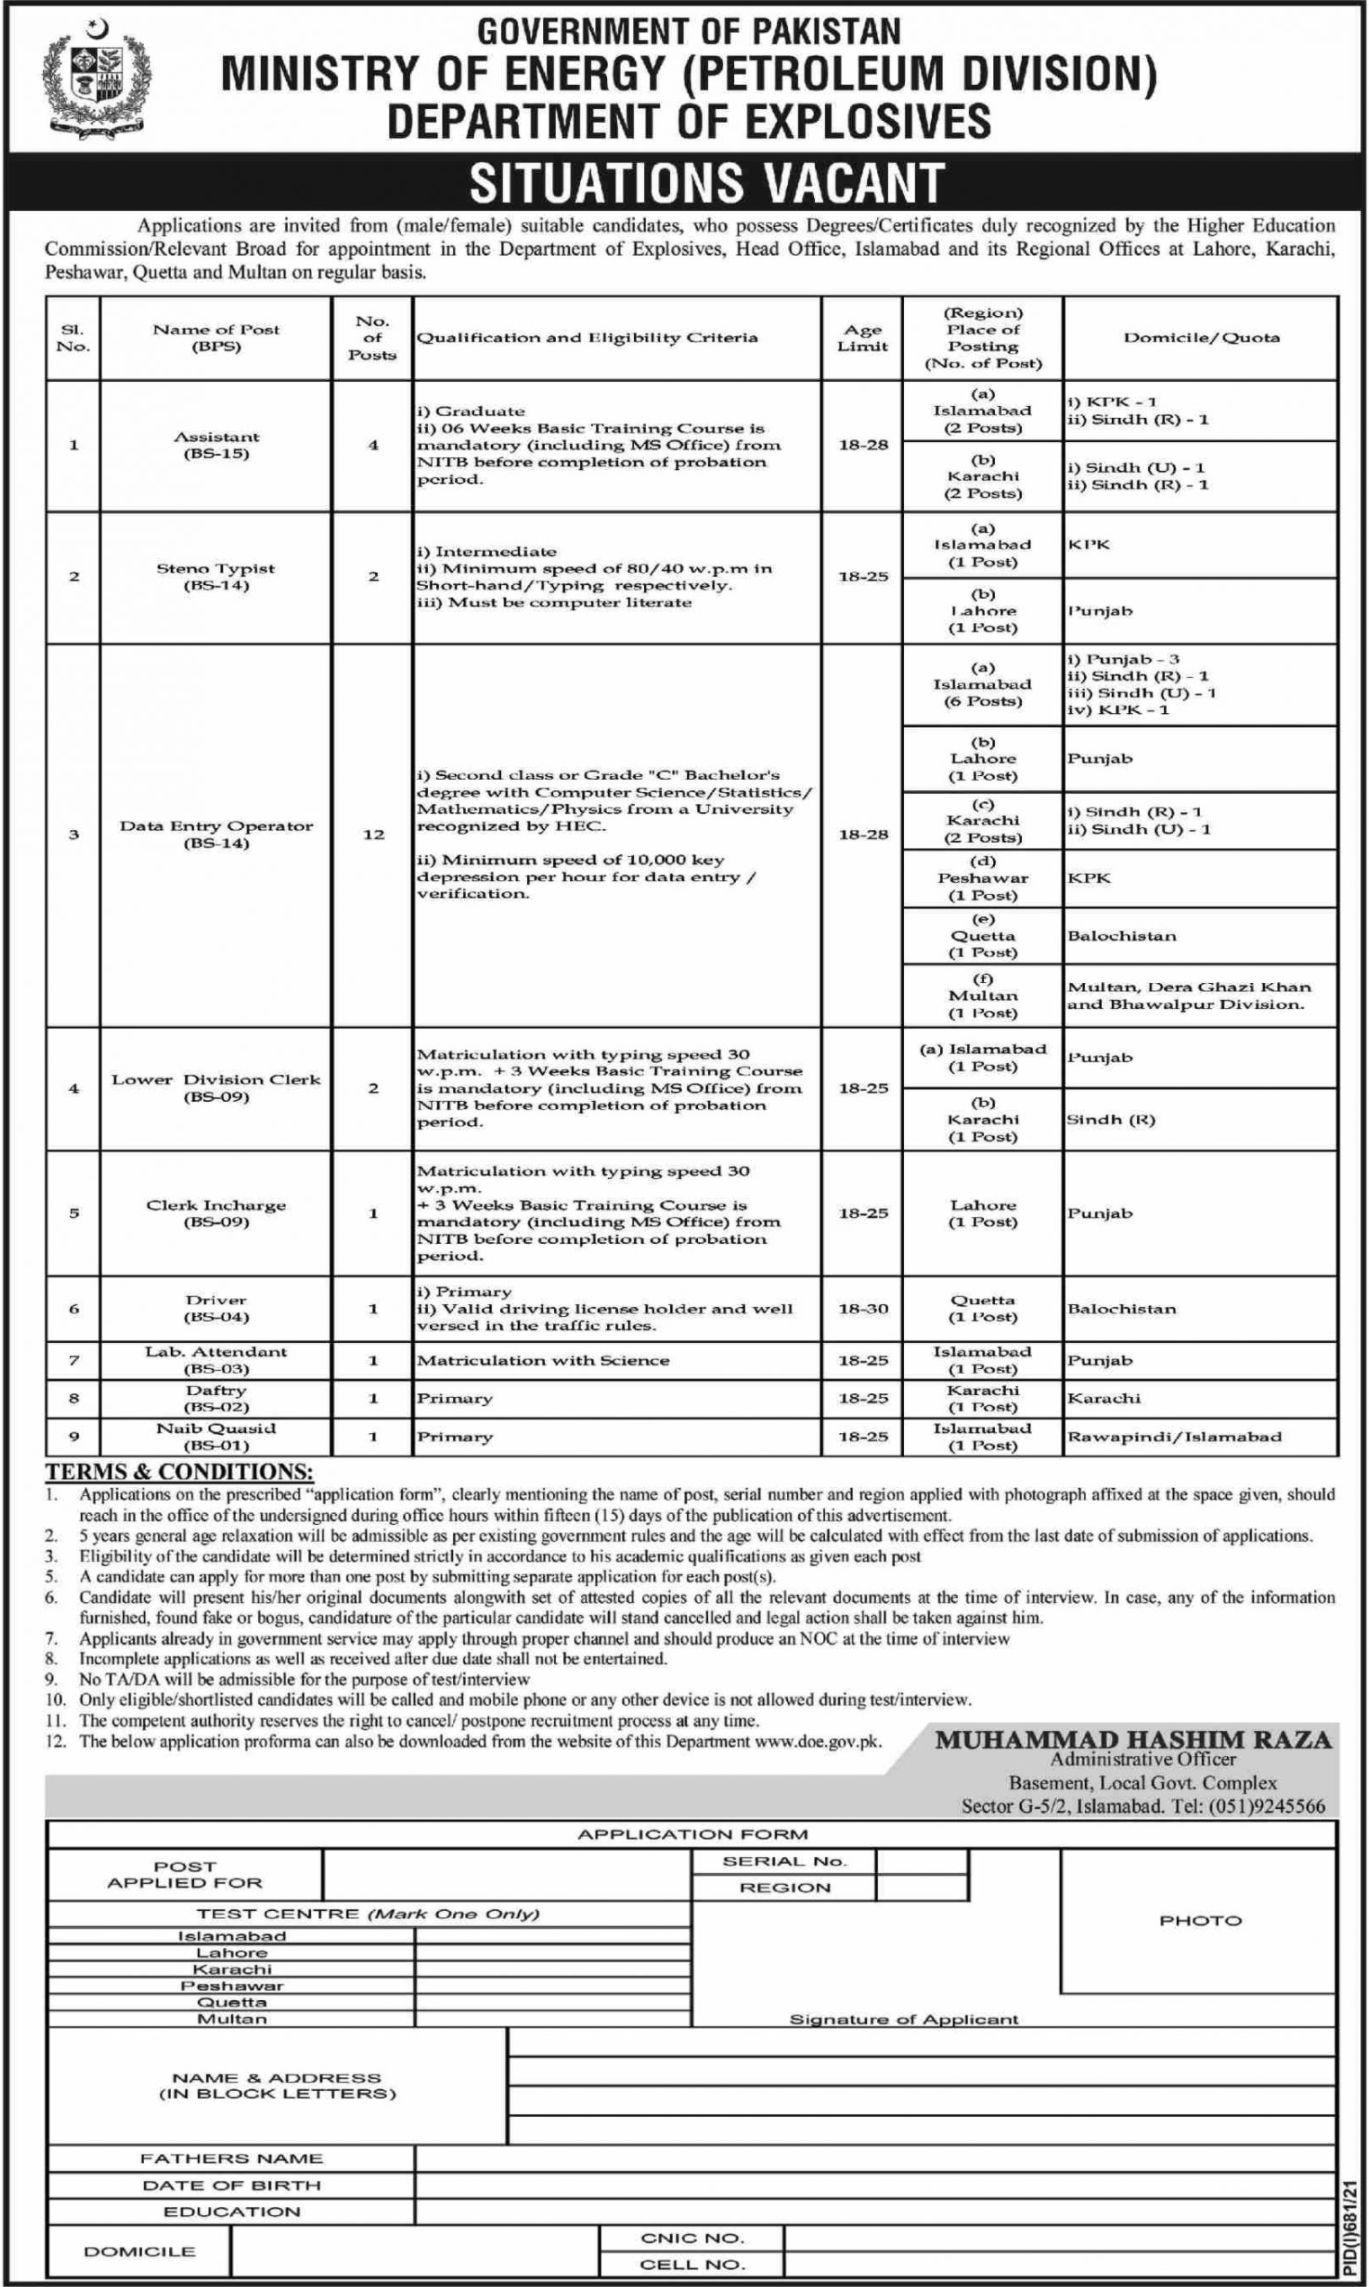 Ministry of Energy petroleum Division Vacancies 2021 2